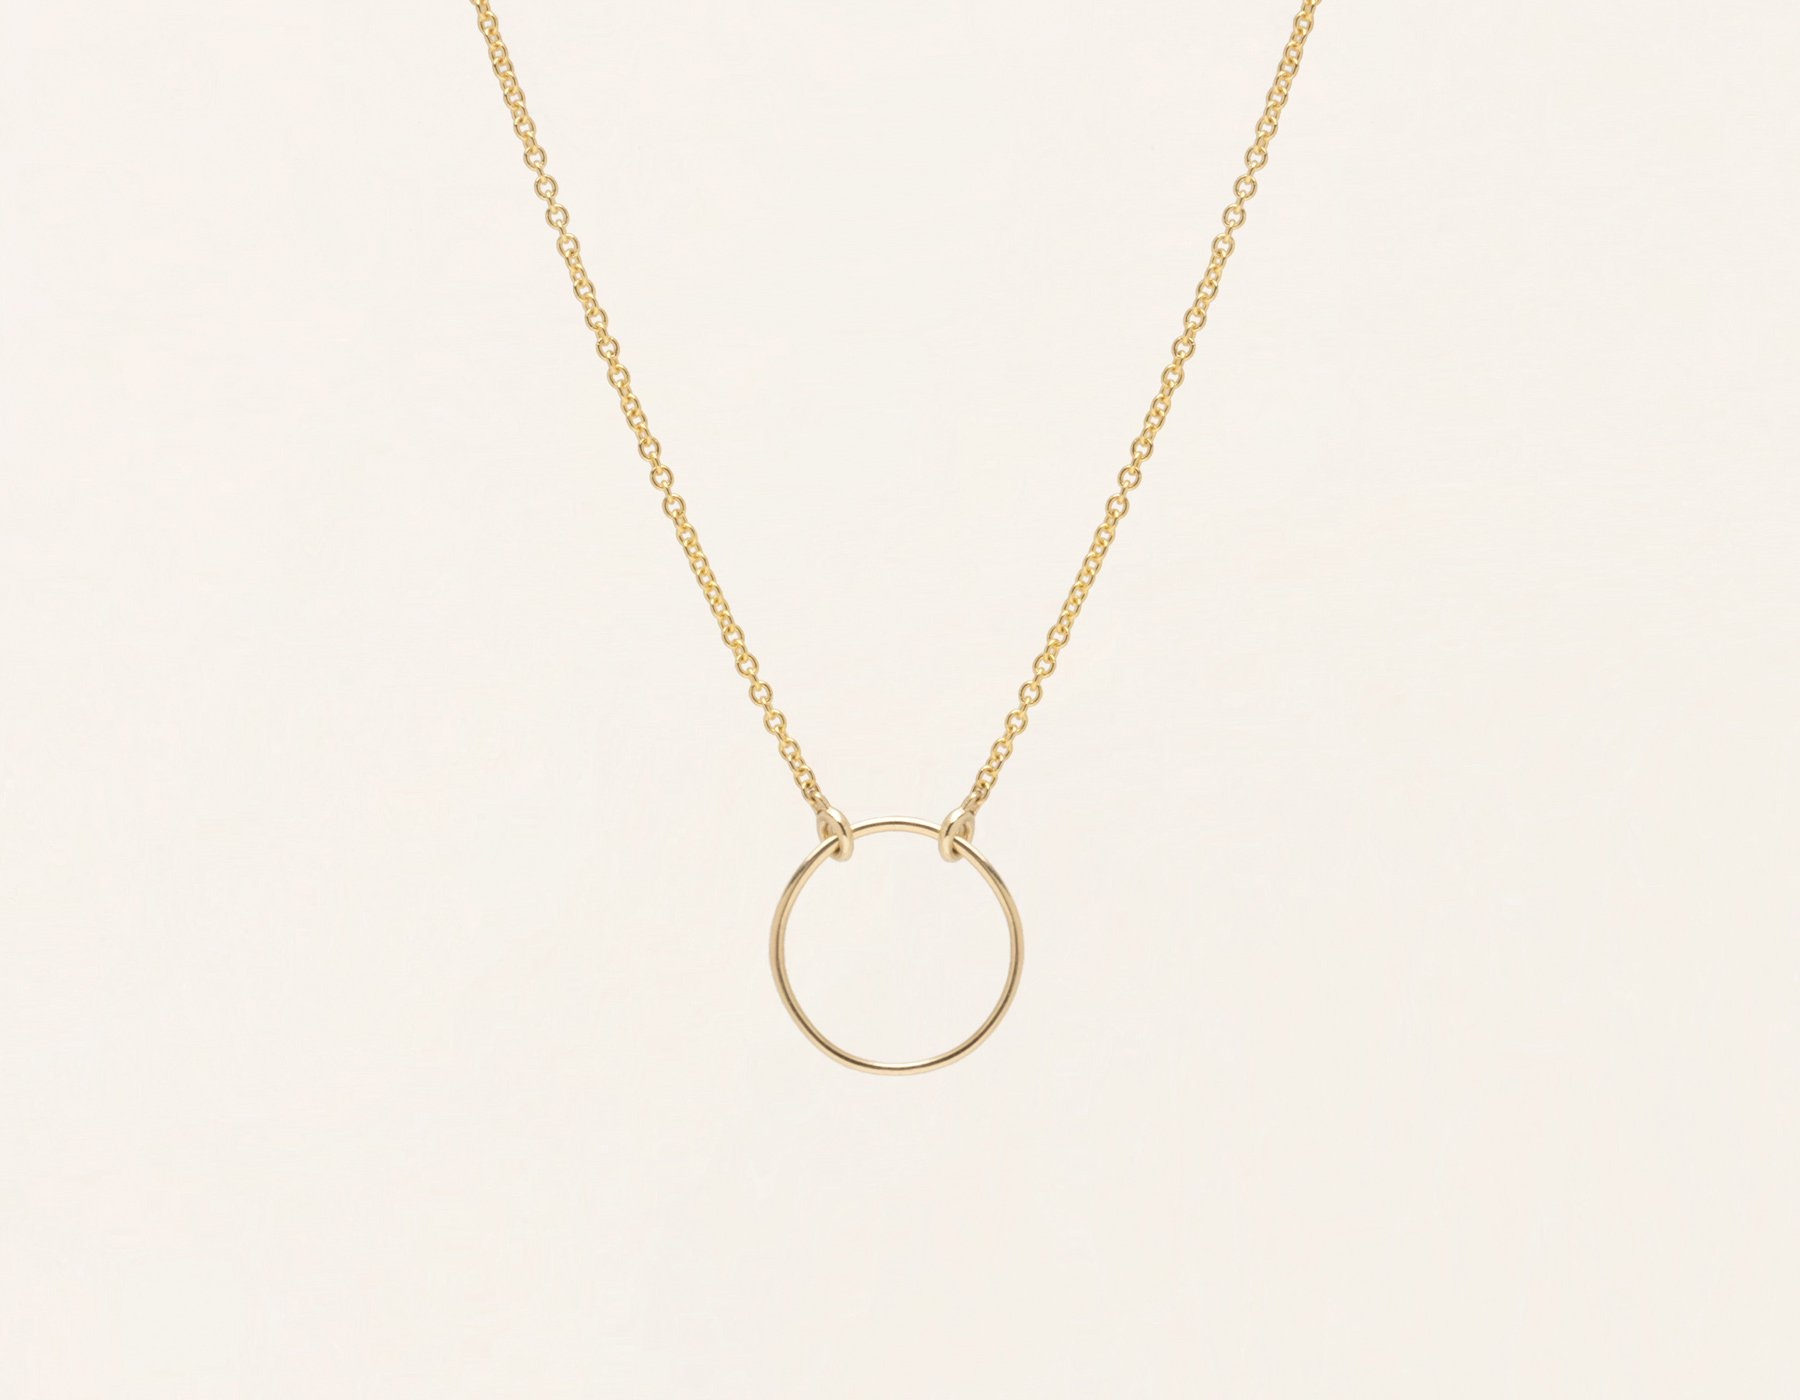 Circle Necklace by Vrai & Oro | Responsibly-Made Coin Necklaces on The Good Trade